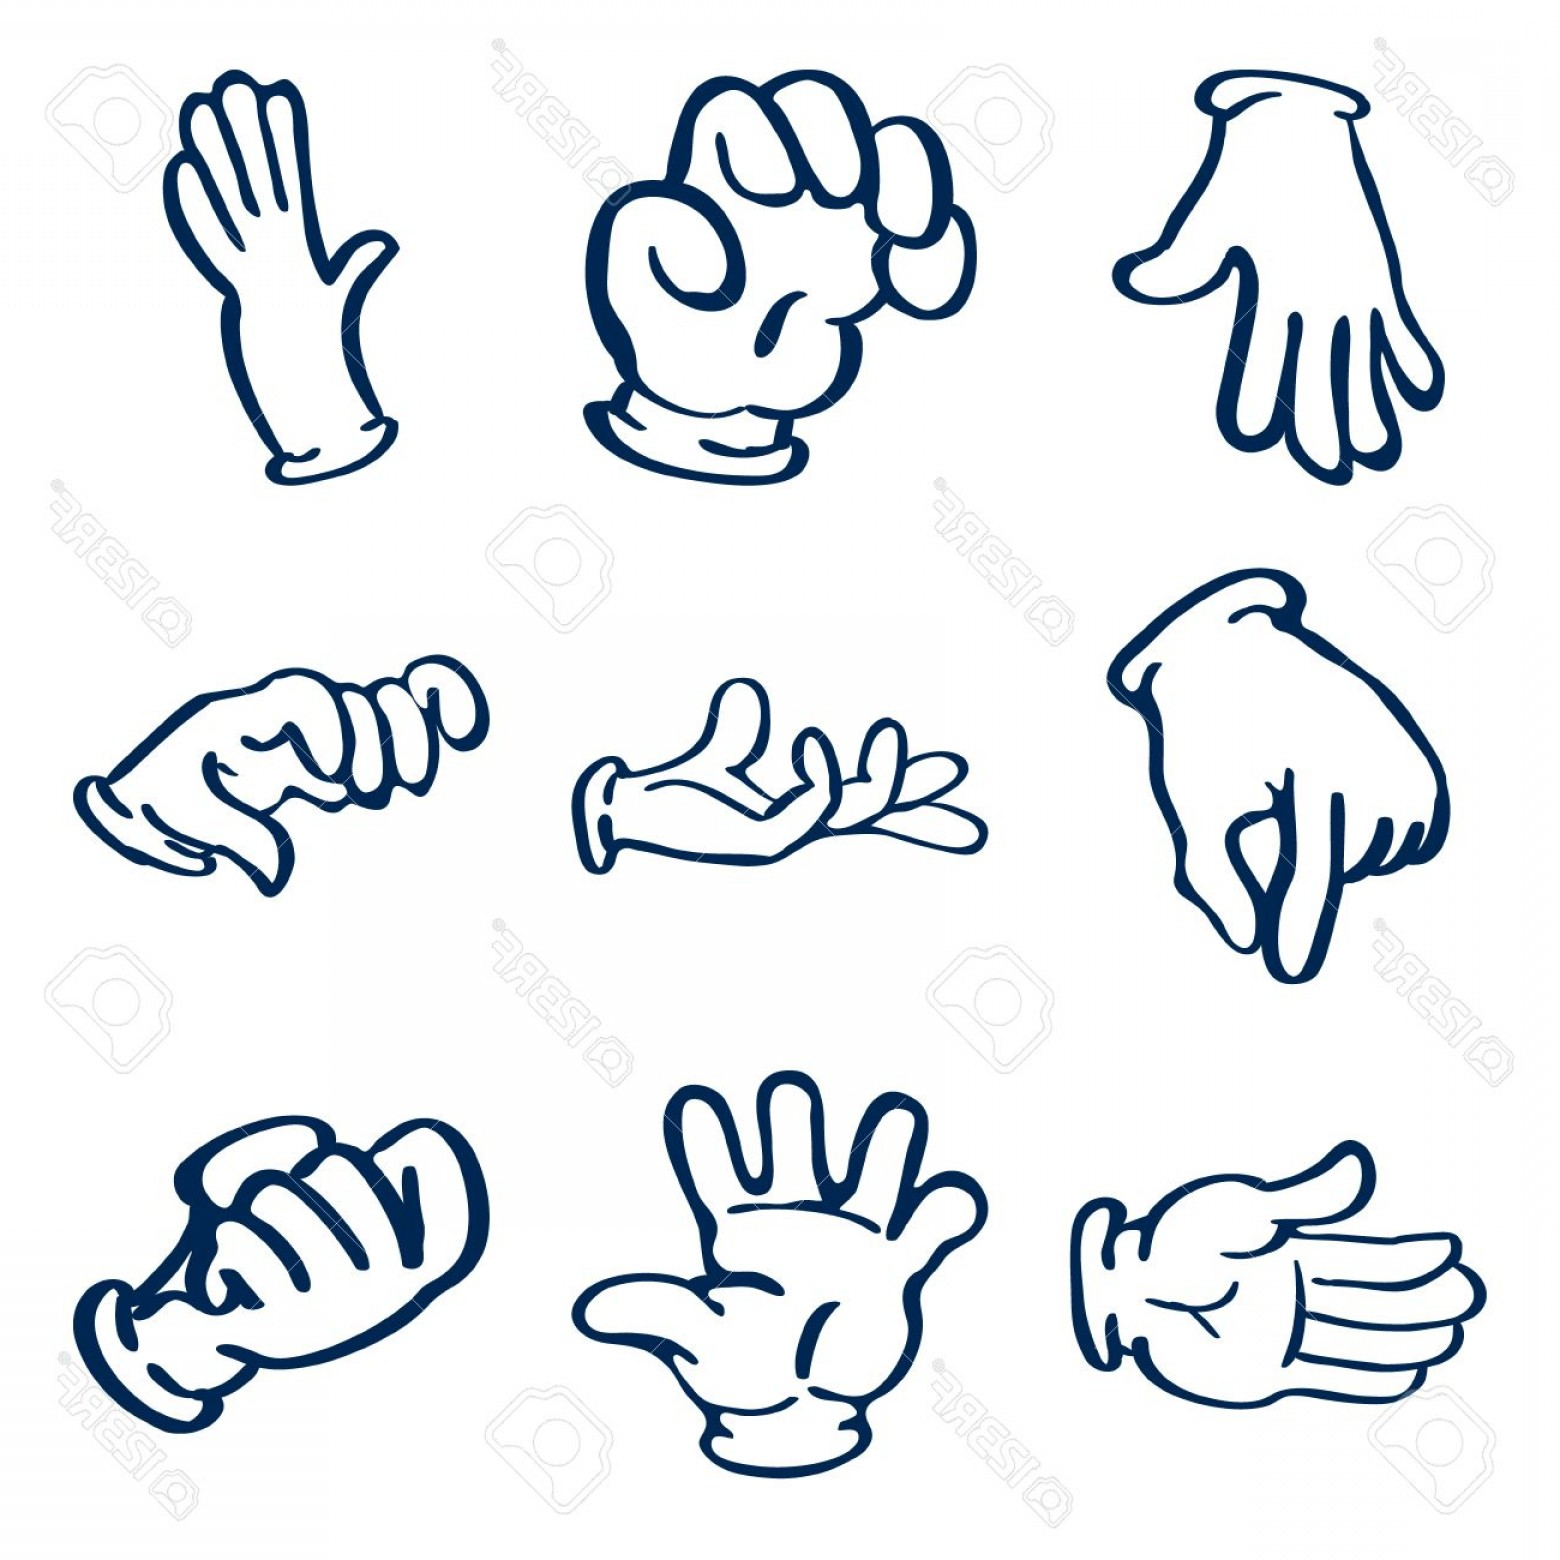 Hand Vector Clip Art: Photostock Vector Cartoon Gloved Hands Vector Clip Art Illustration